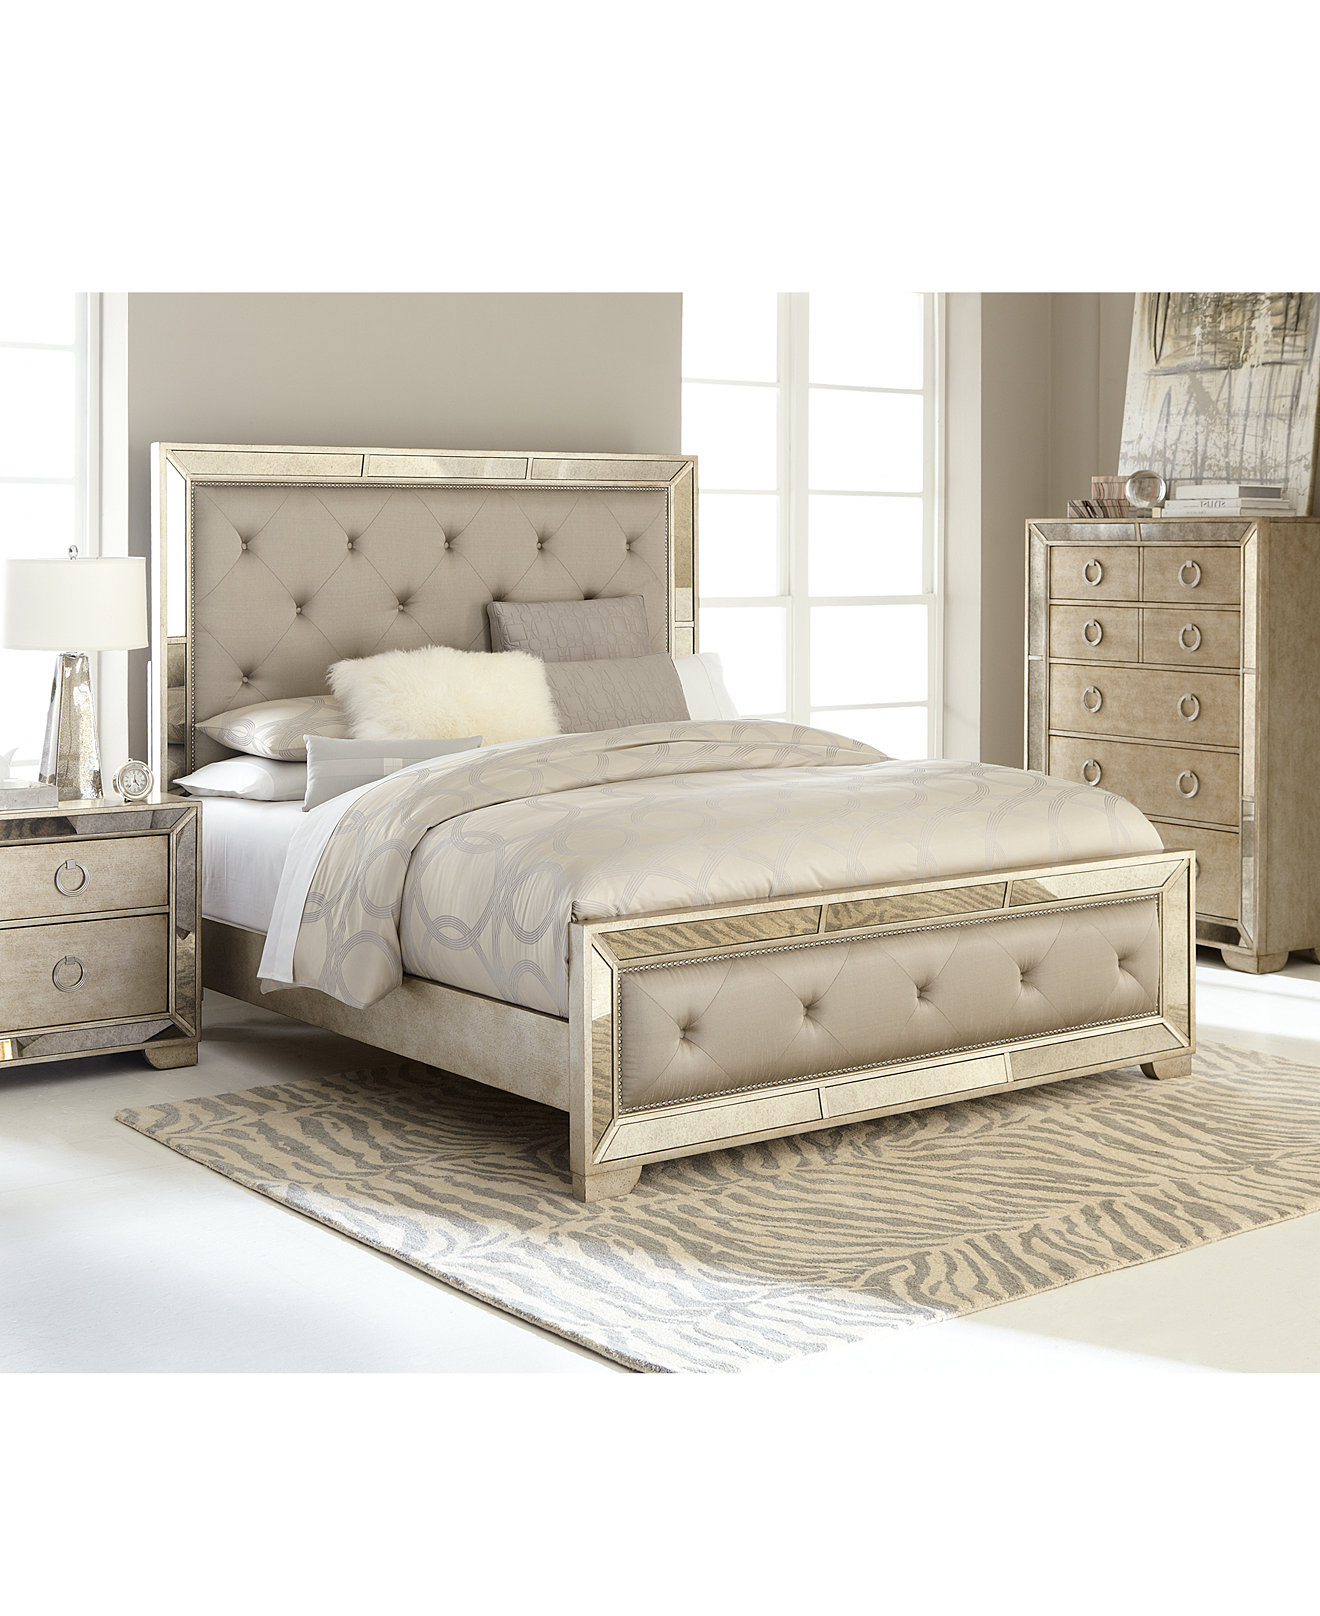 Macys Furniture Bedroom Ailey Bedroom Furniture Collection Furniture Macys